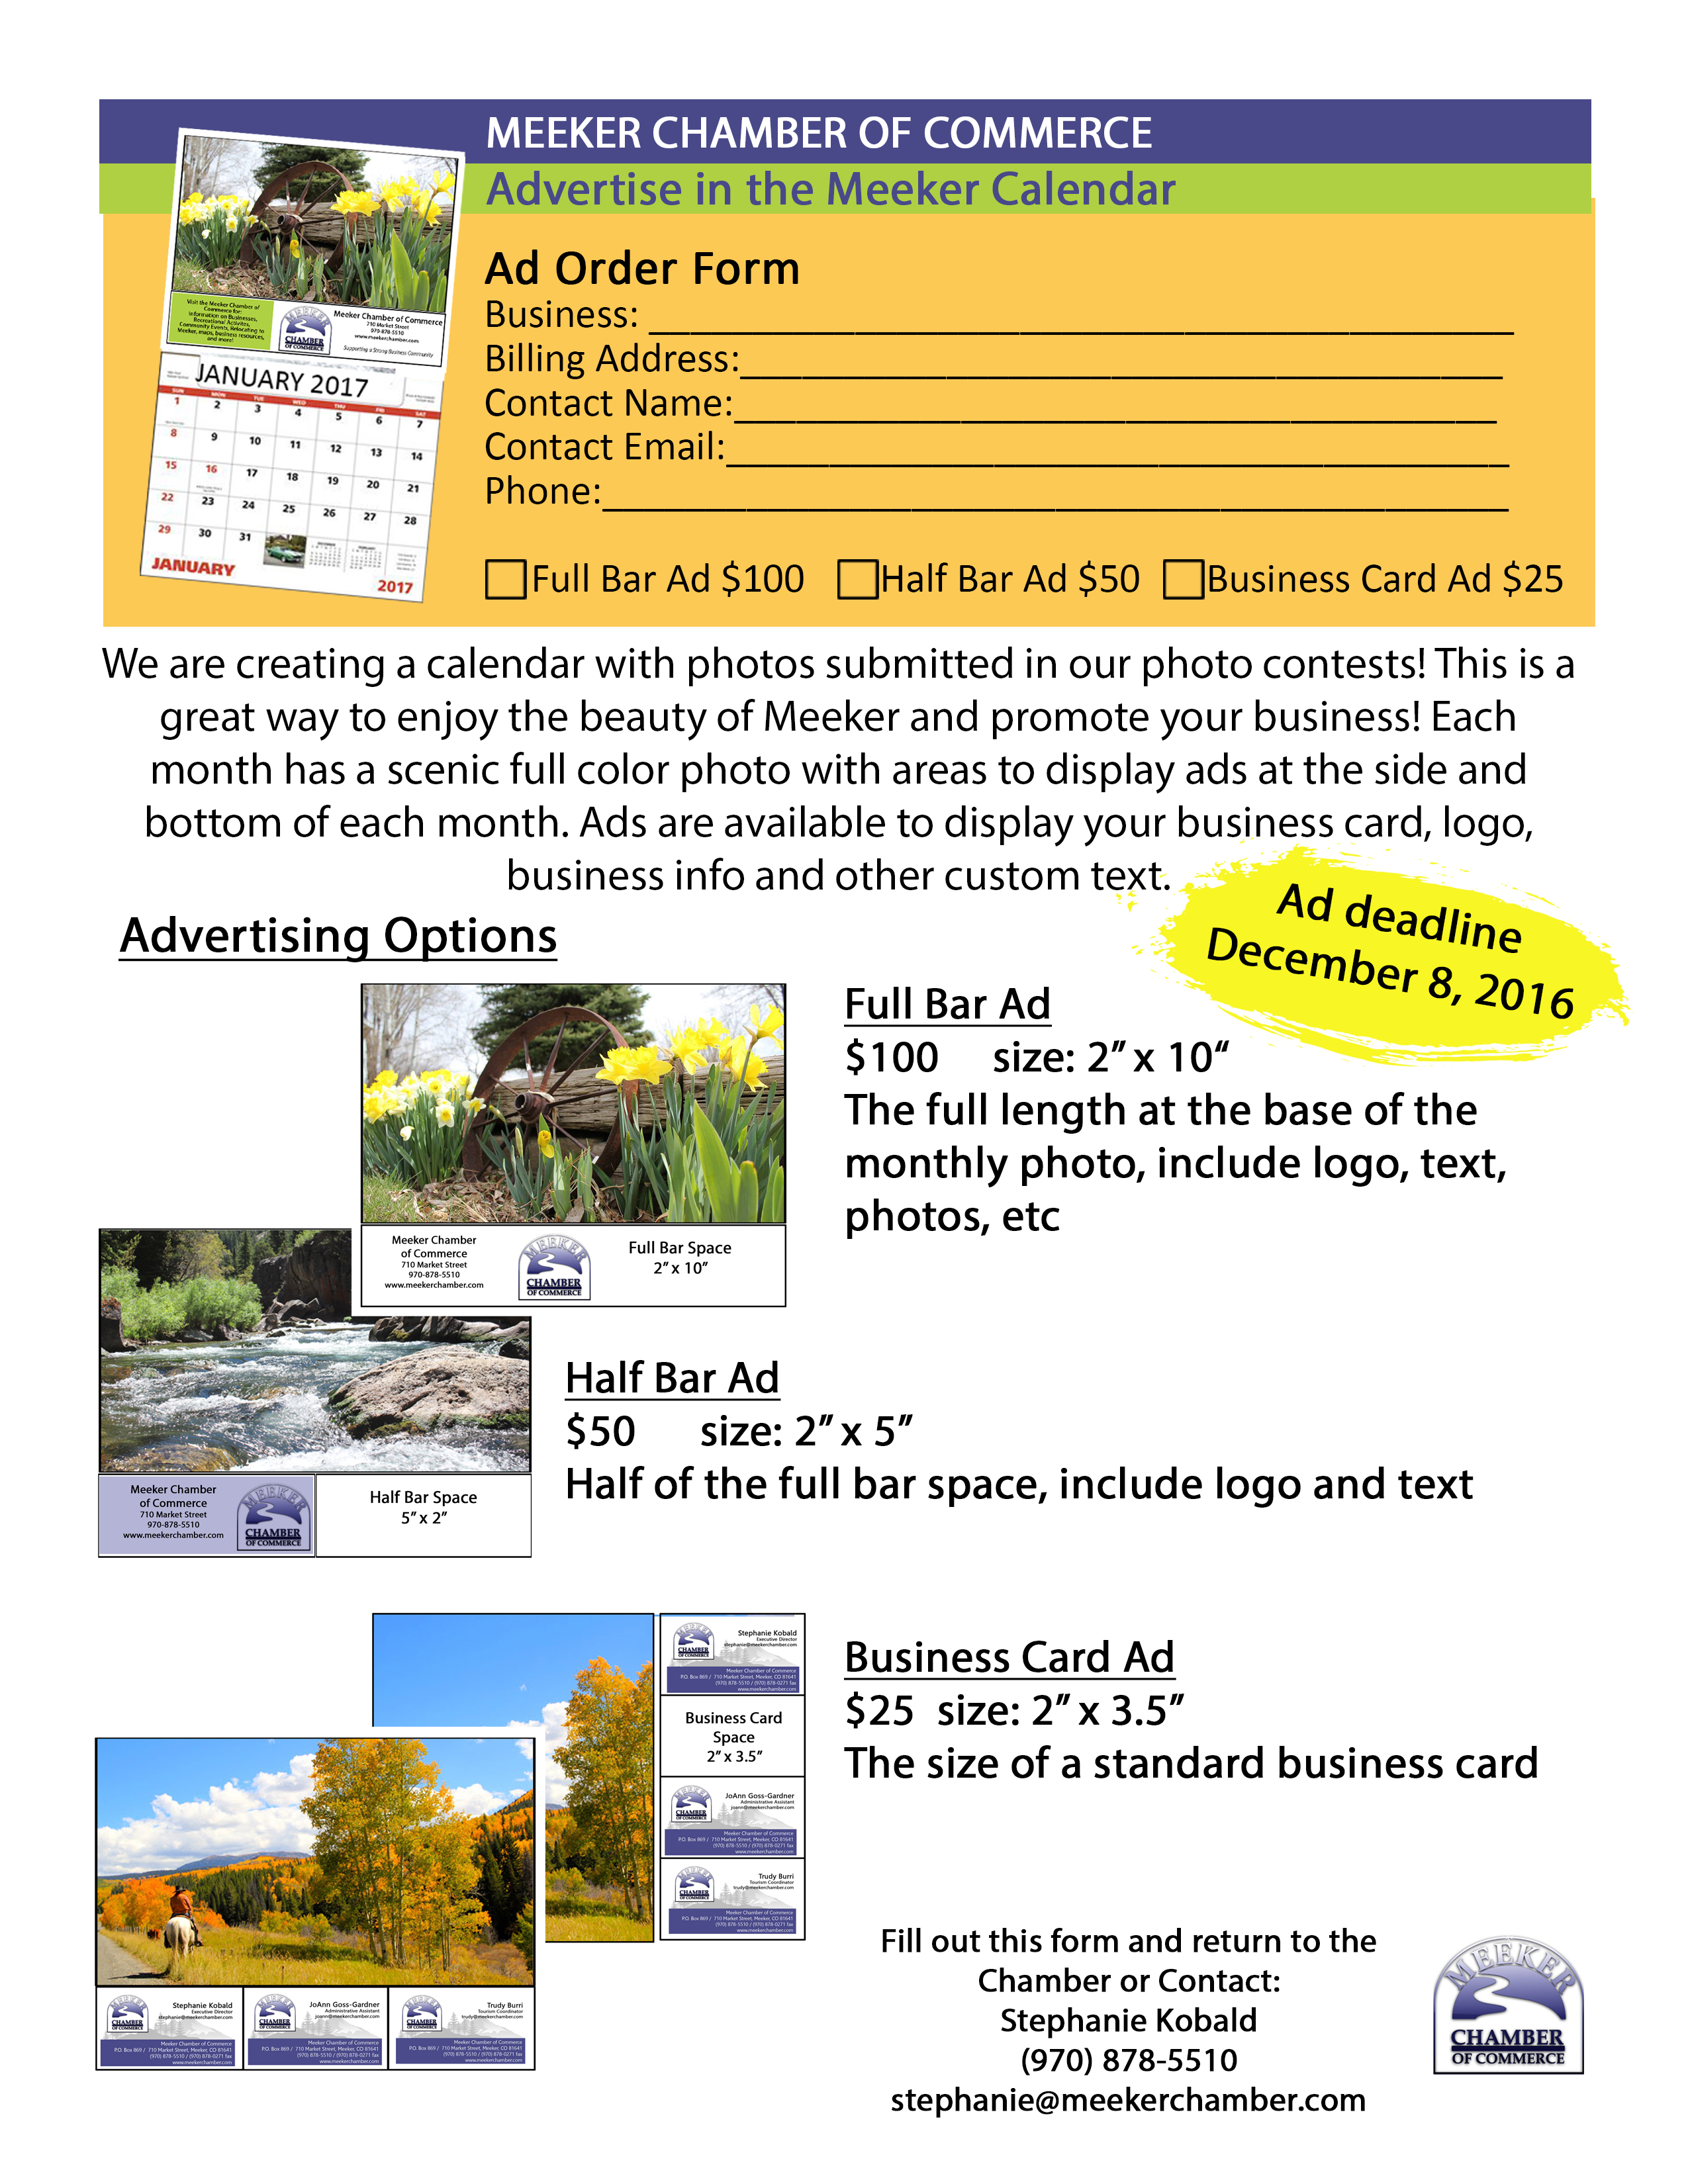 Meeker chamber of commerce advertise in the printed meeker calendar 2017 meeker calendar ad guide a reheart Gallery